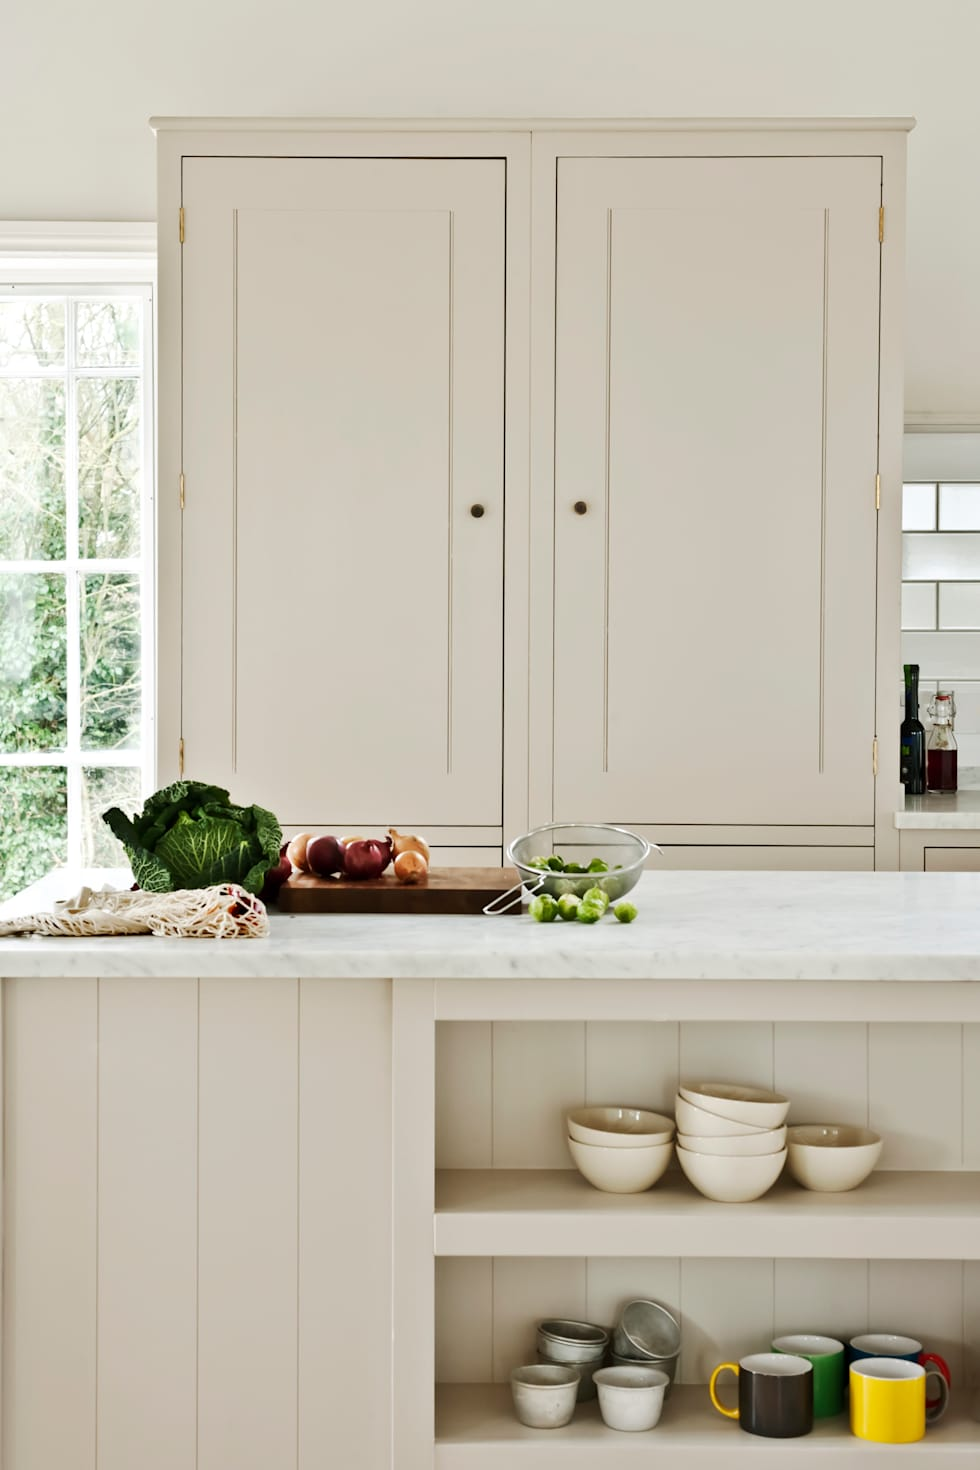 Interior design ideas redecorating remodeling photos for Kitchen cabinet english style